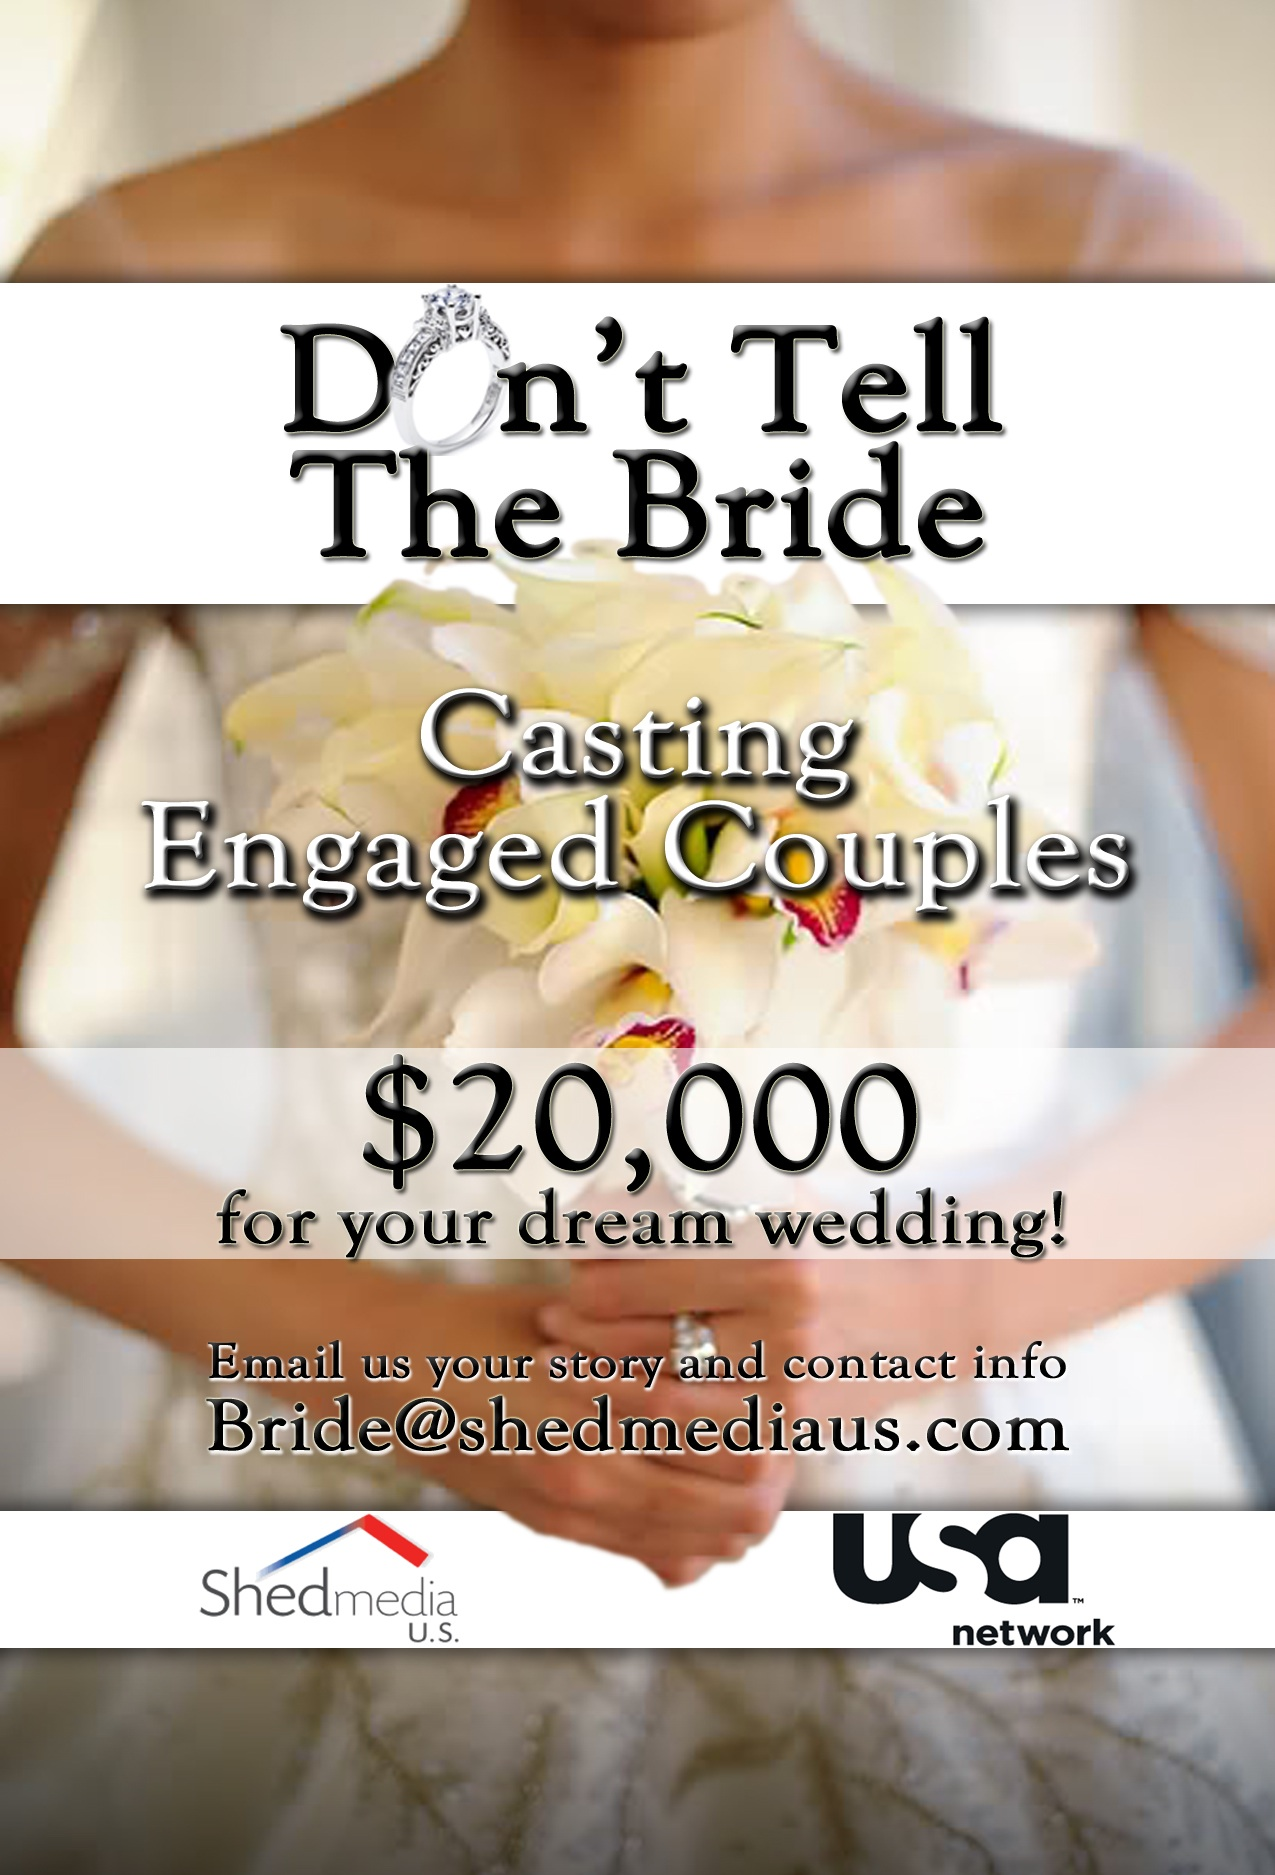 Don't Tell The Bride Casting NYC Wedding Engaged Couples